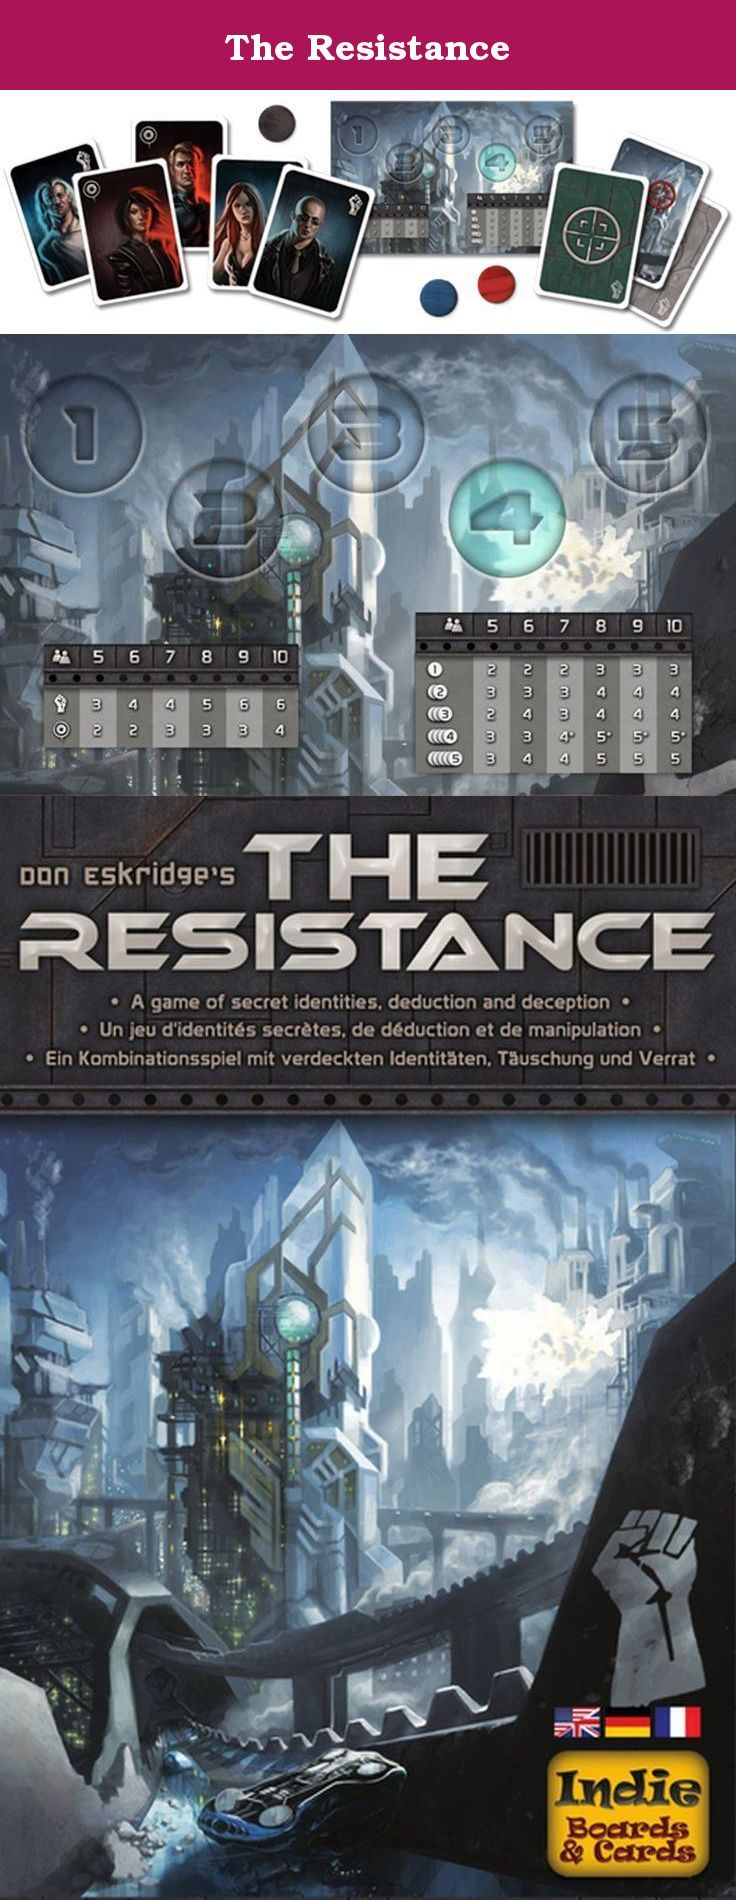 The Resistance. The Resistance is an intense social